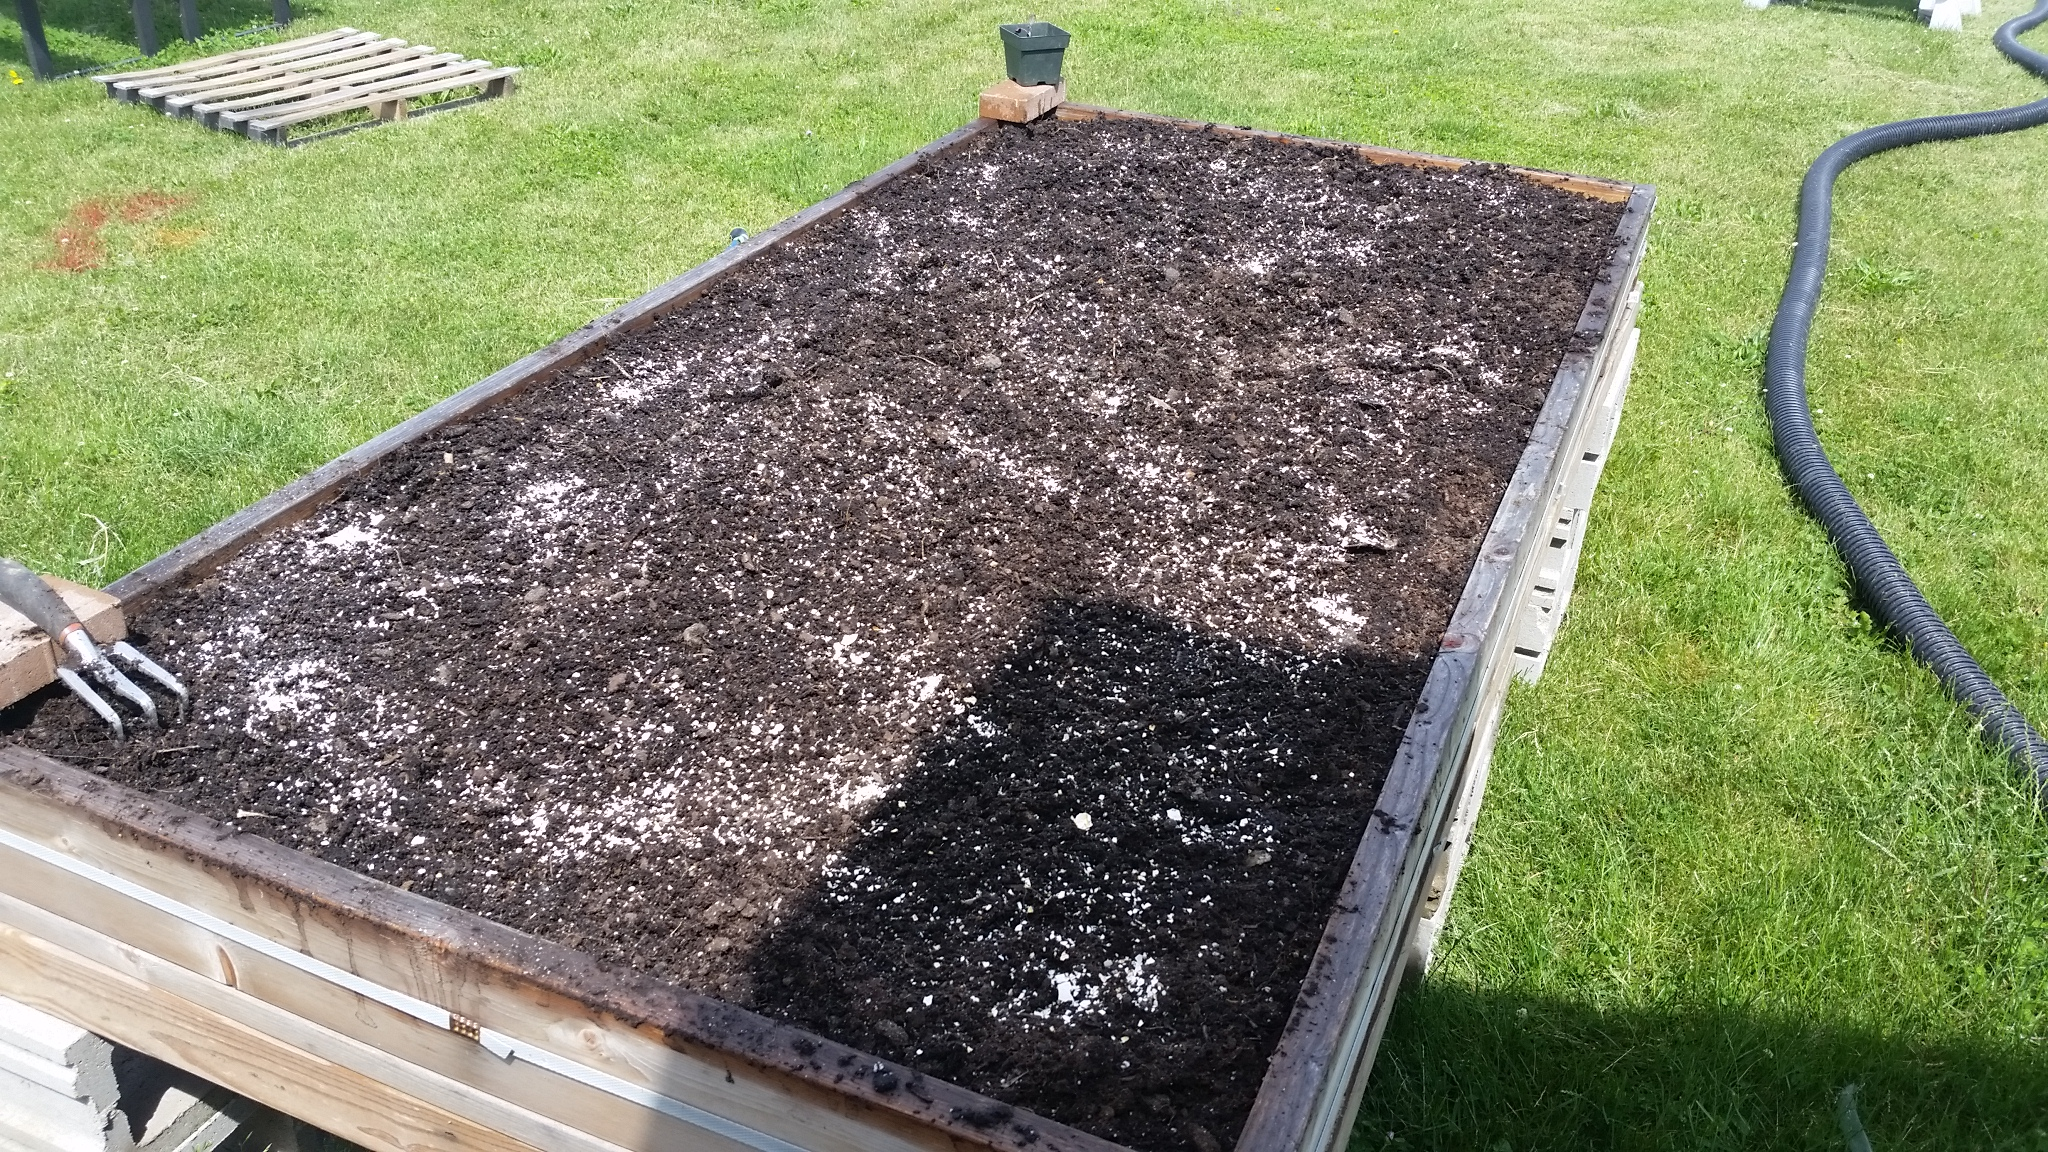 The Raised Beds A Pinch Of Homestead